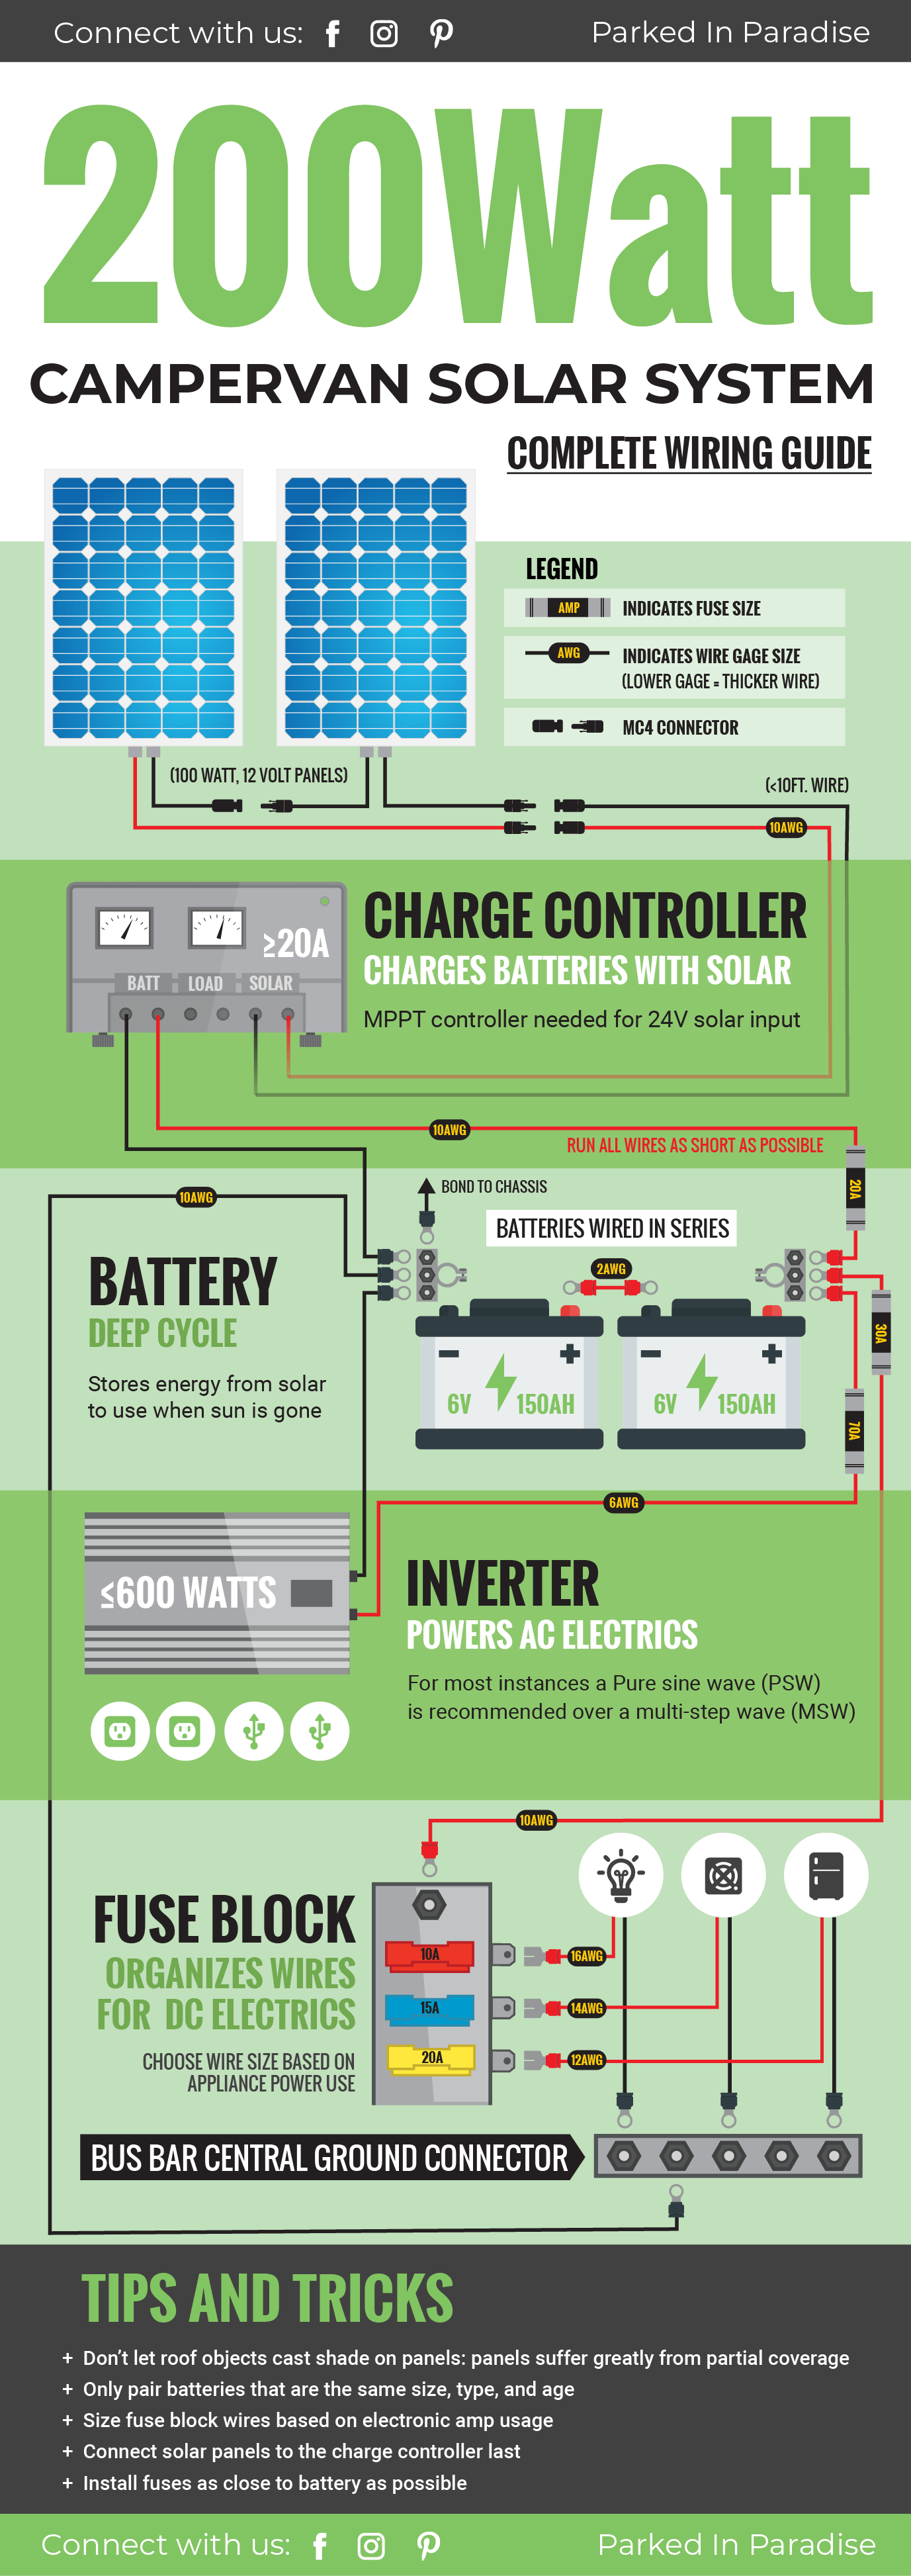 Solar Calculator And Diy Wiring Diagrams Alternative Energy Solar Panels Van Life